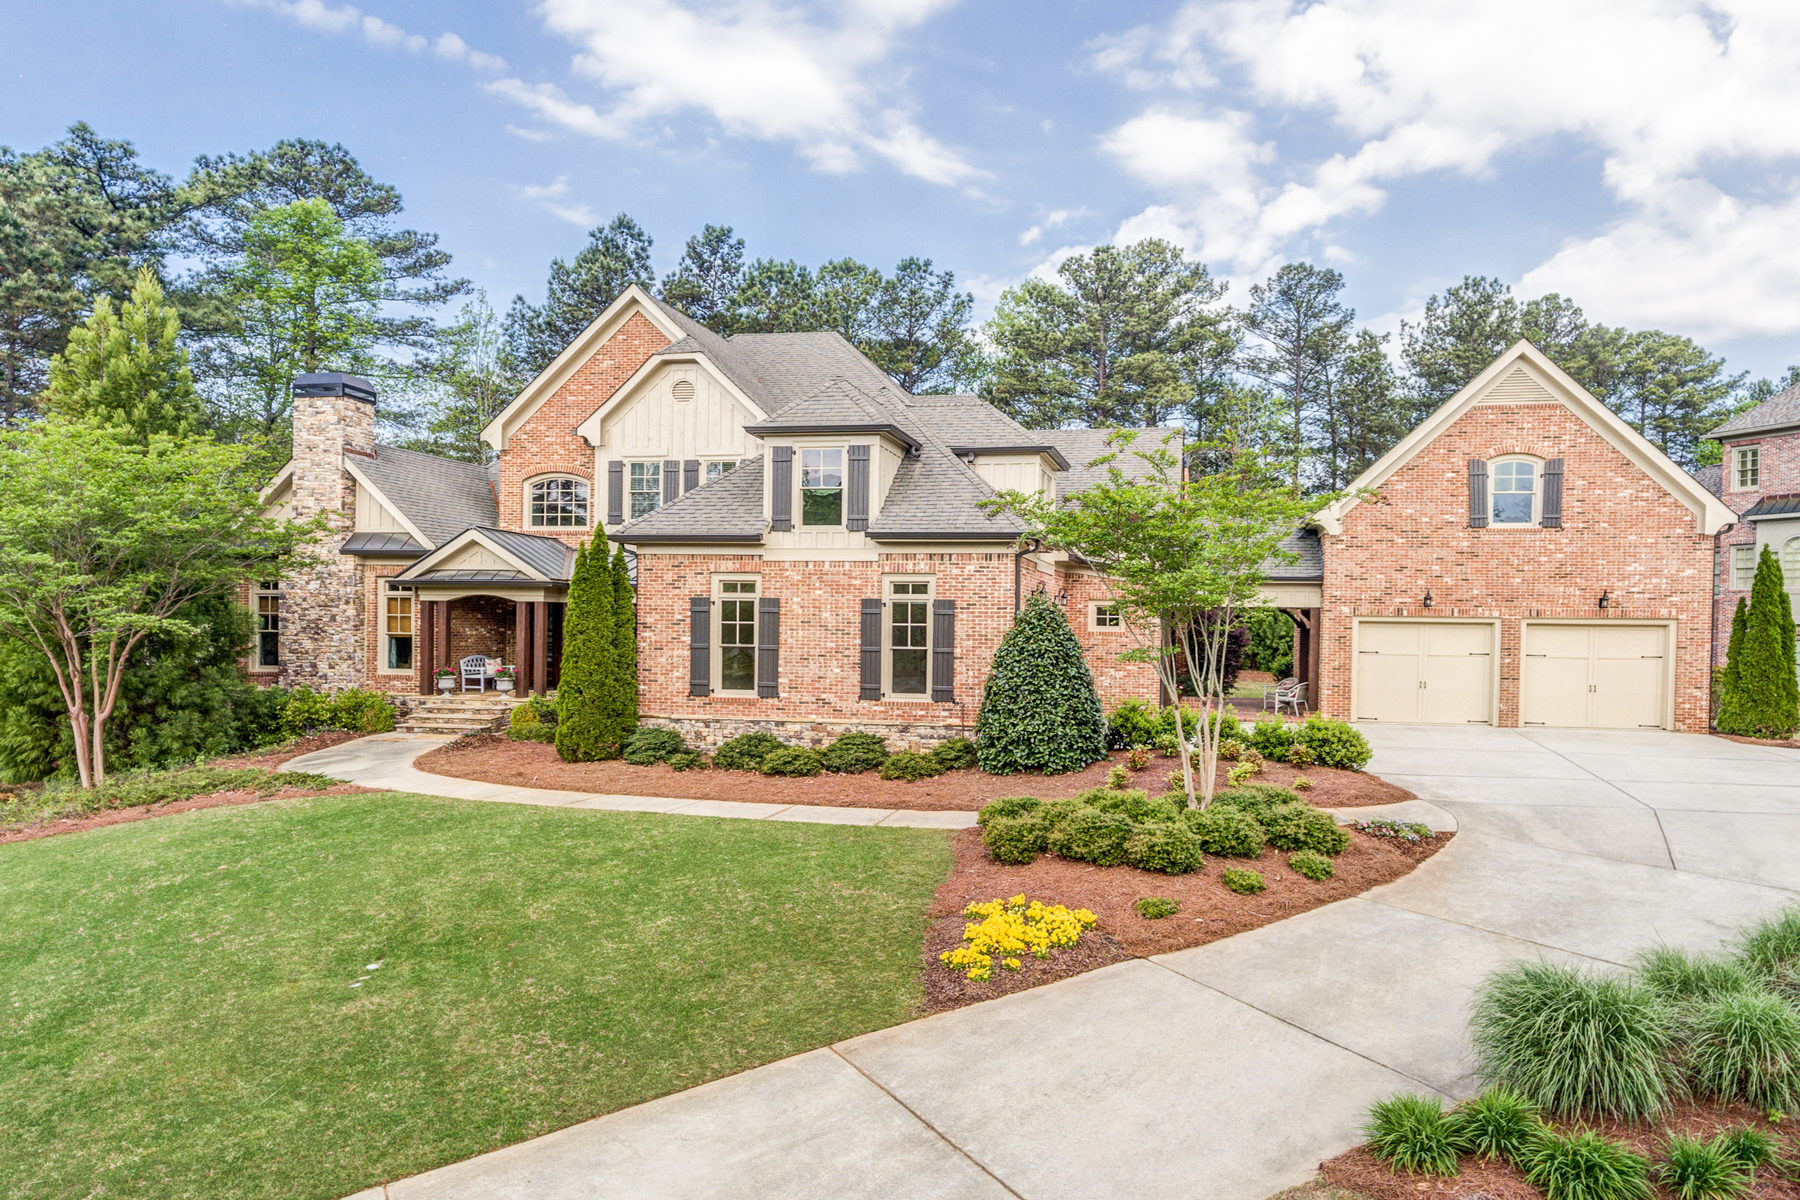 Moradia para Venda às Custom Elegance, Luxury Living 4367 Oglethorpe Loop Acworth, Geórgia, 30101 Estados Unidos